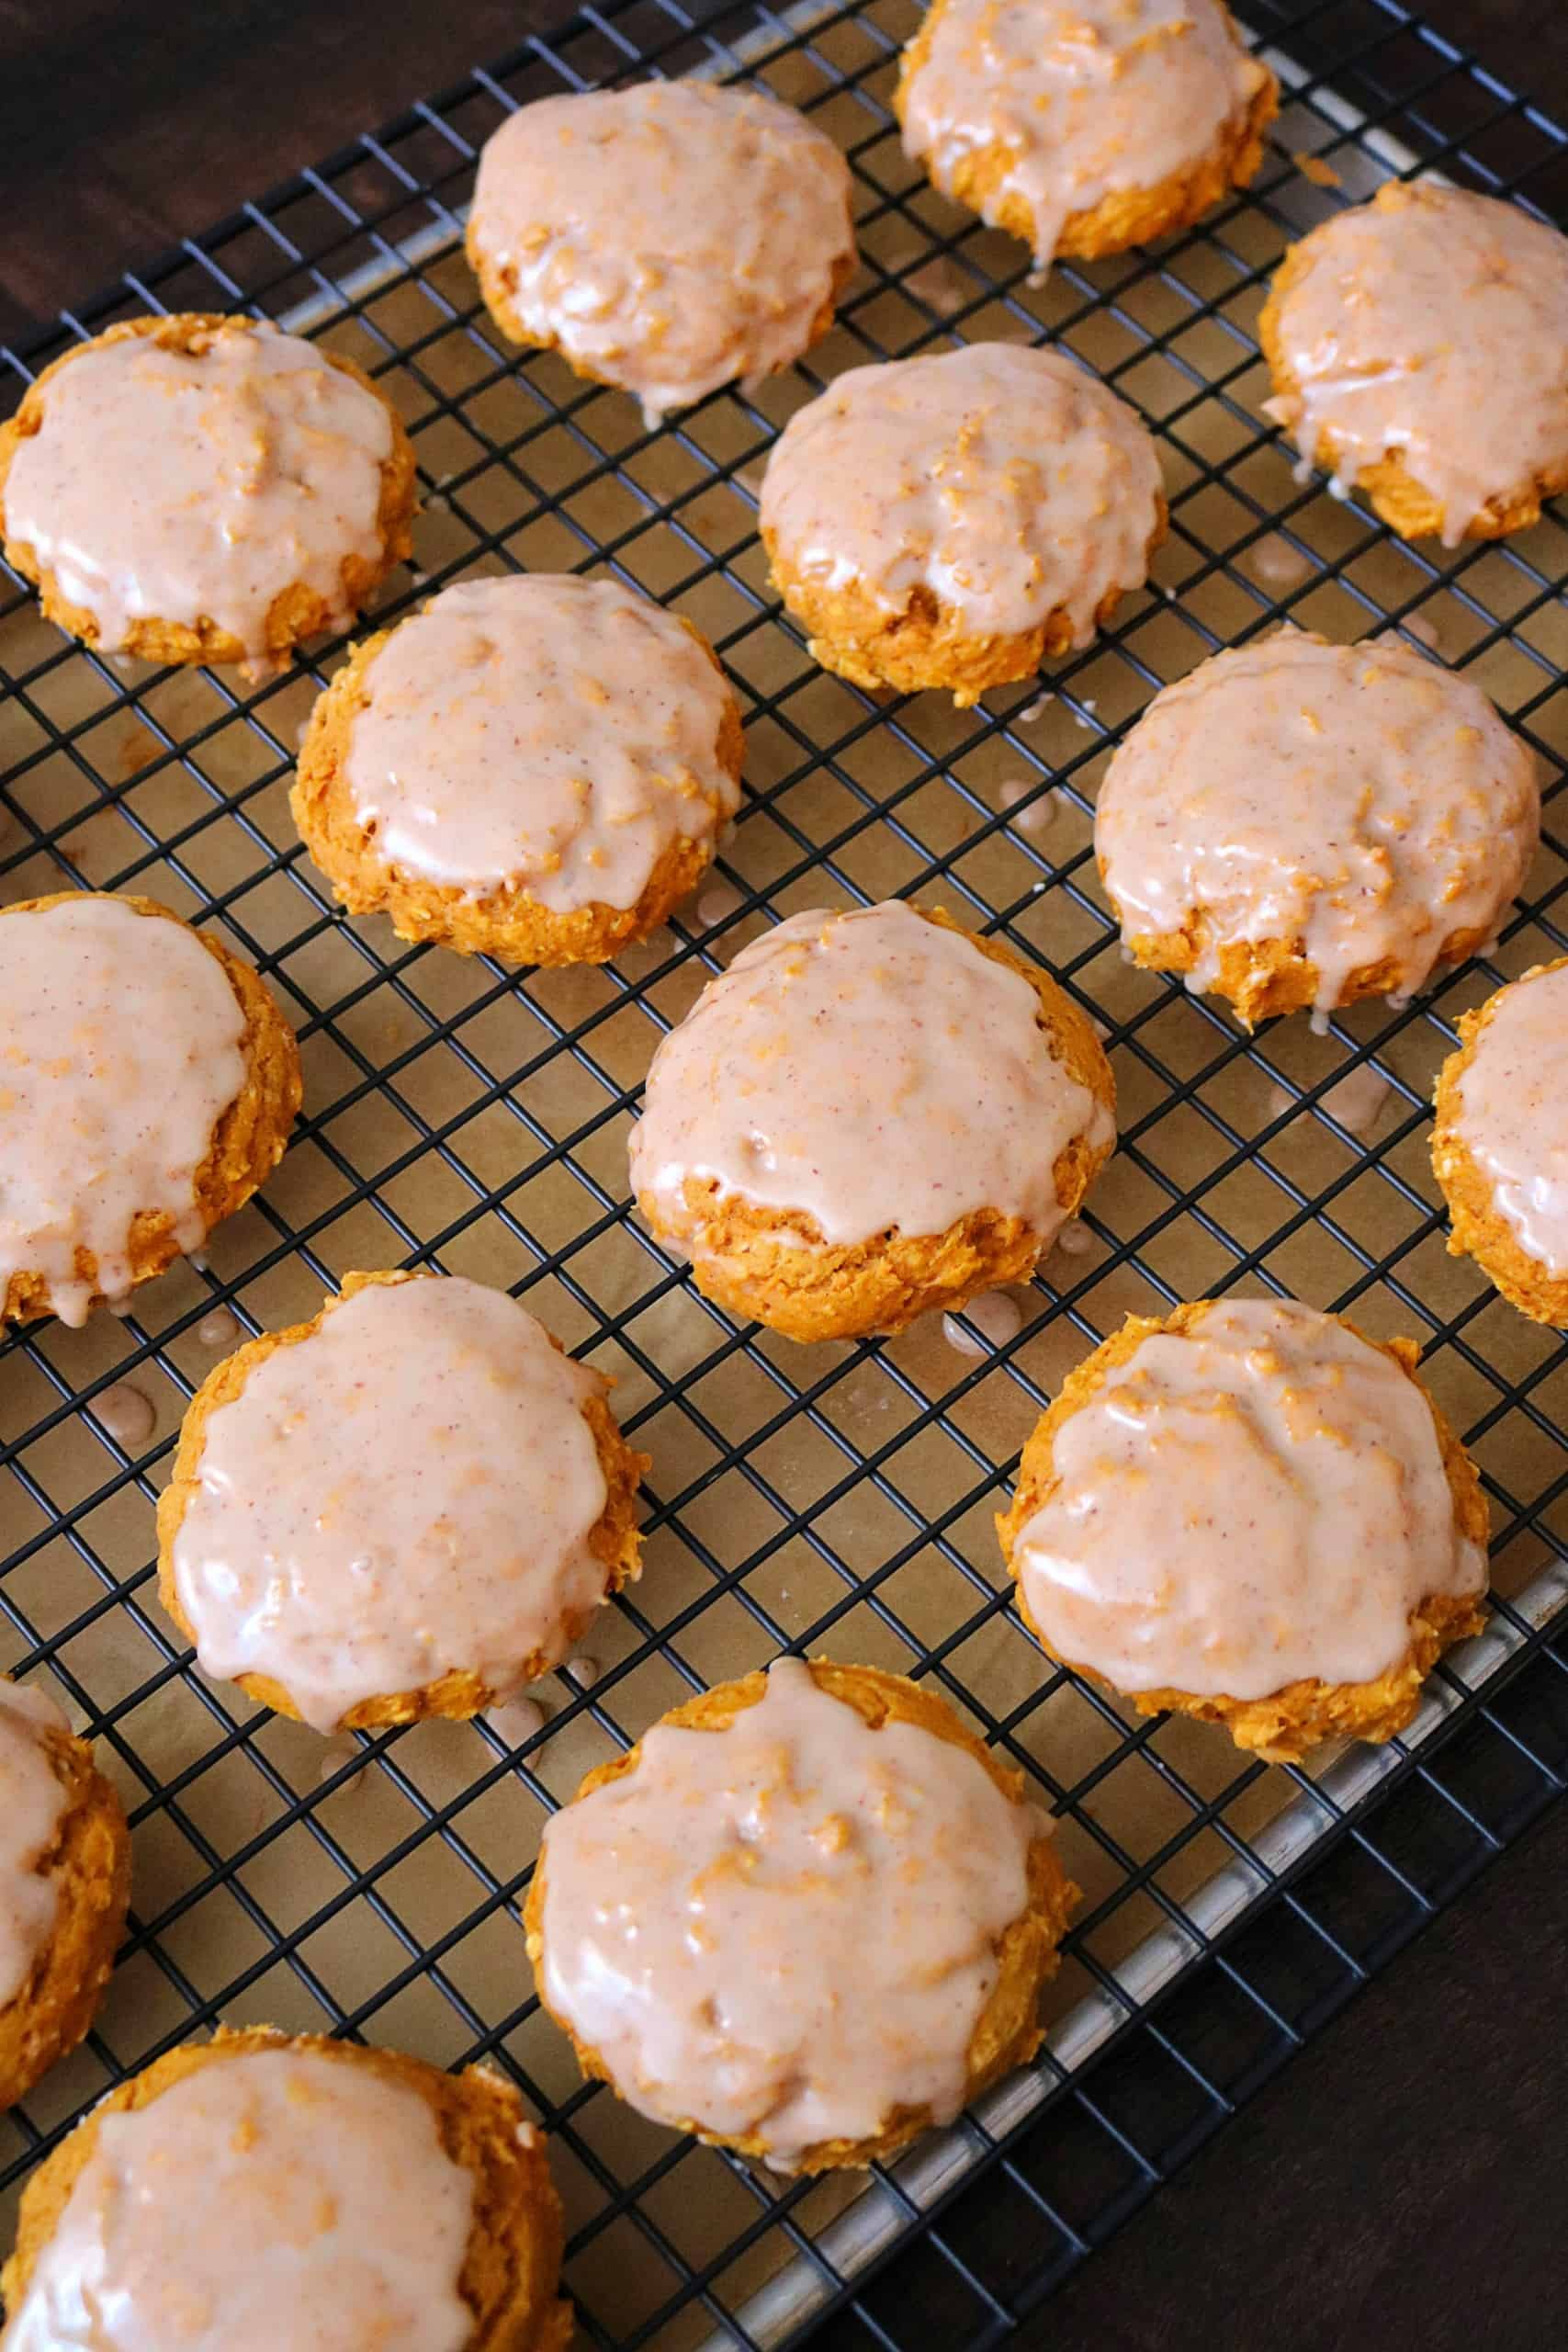 Get the recipe for these Easy Cake Mix Pumpkin Spice Cookies with a Cinnamon Maple Glaze. These pumpkin cookies are soft, chewy, and delicious made with a boxed cake mix, pumpkin puree, quick oats, and pumpkin pie spice. #pumpkincookies #pumpkindessert #thanksgivingdessert #cookies